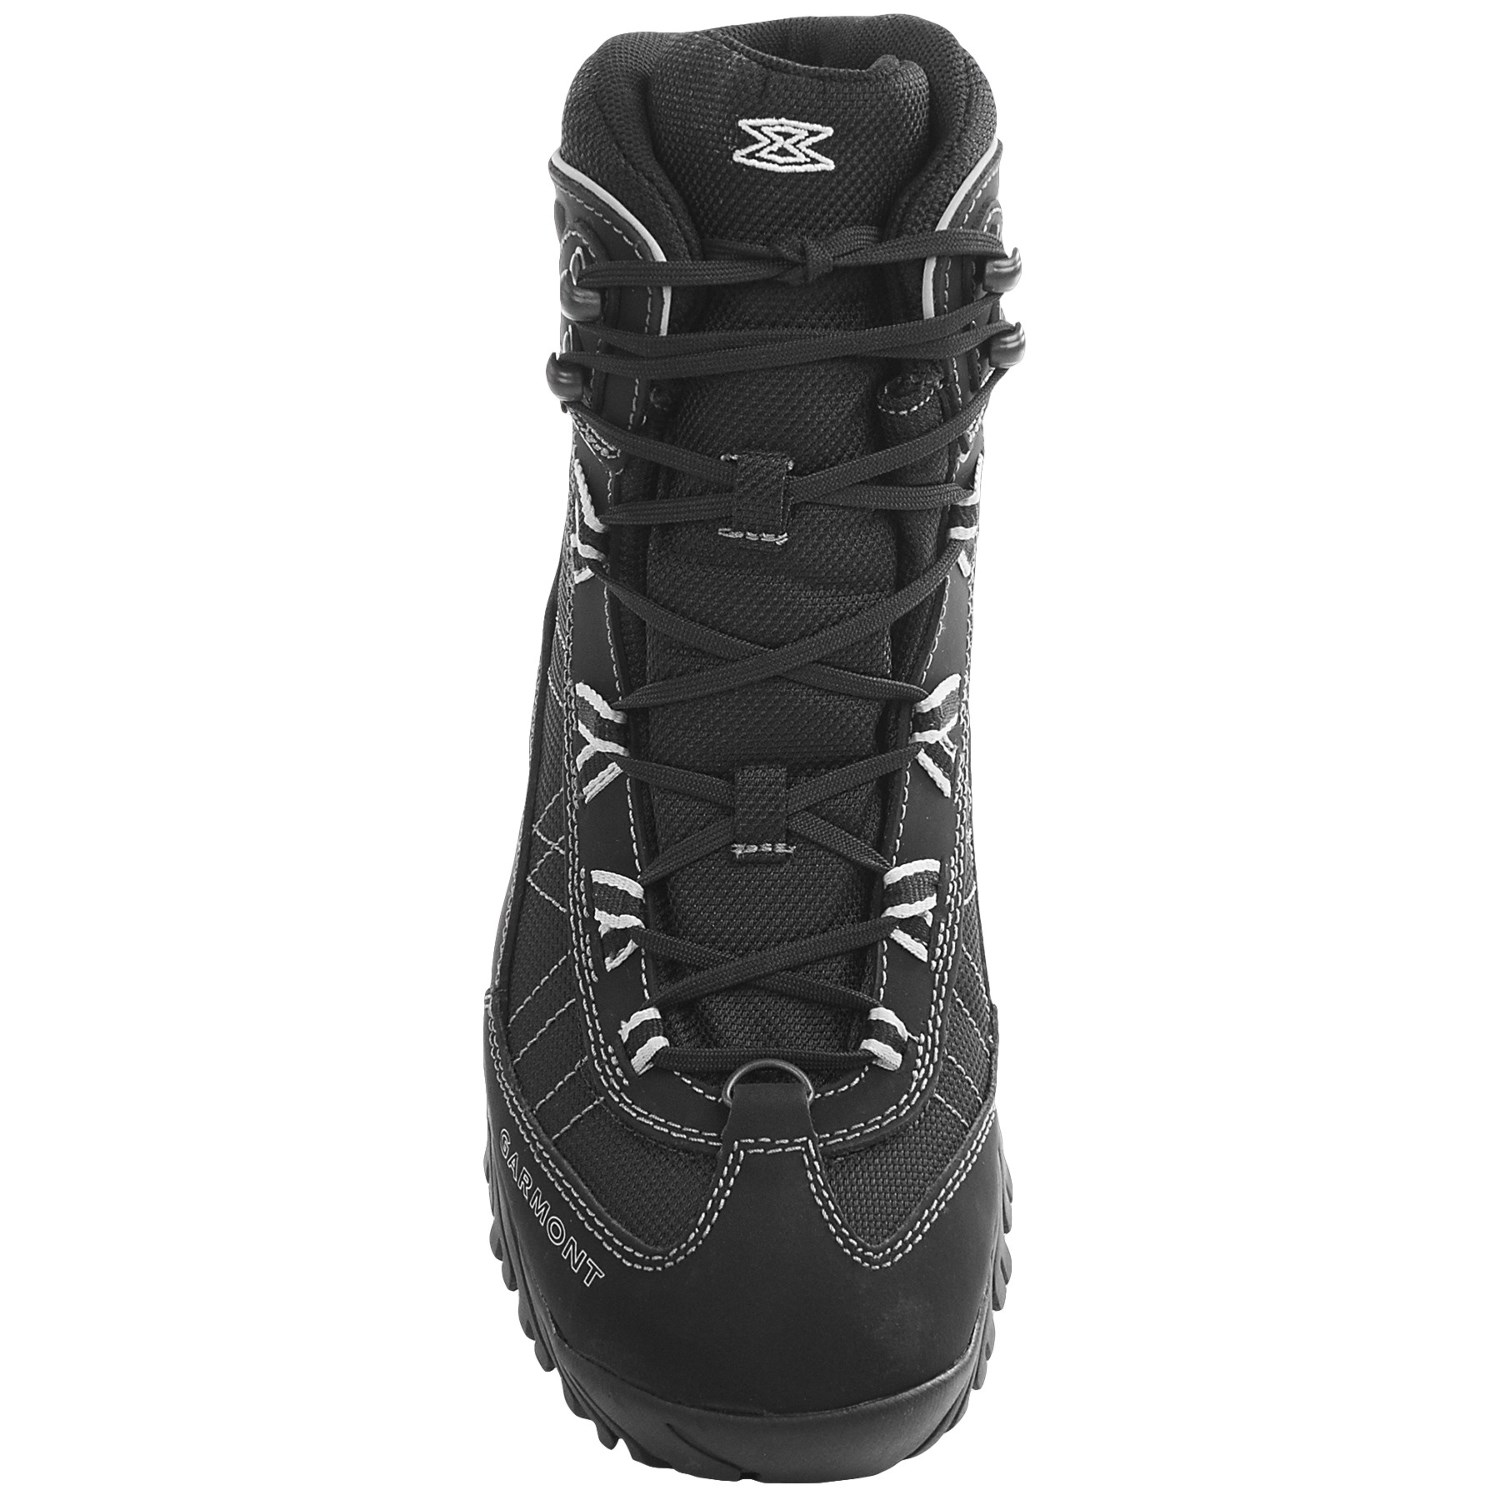 Garmont Momentum Snow Gore Tex 174 Hiking Boots For Women